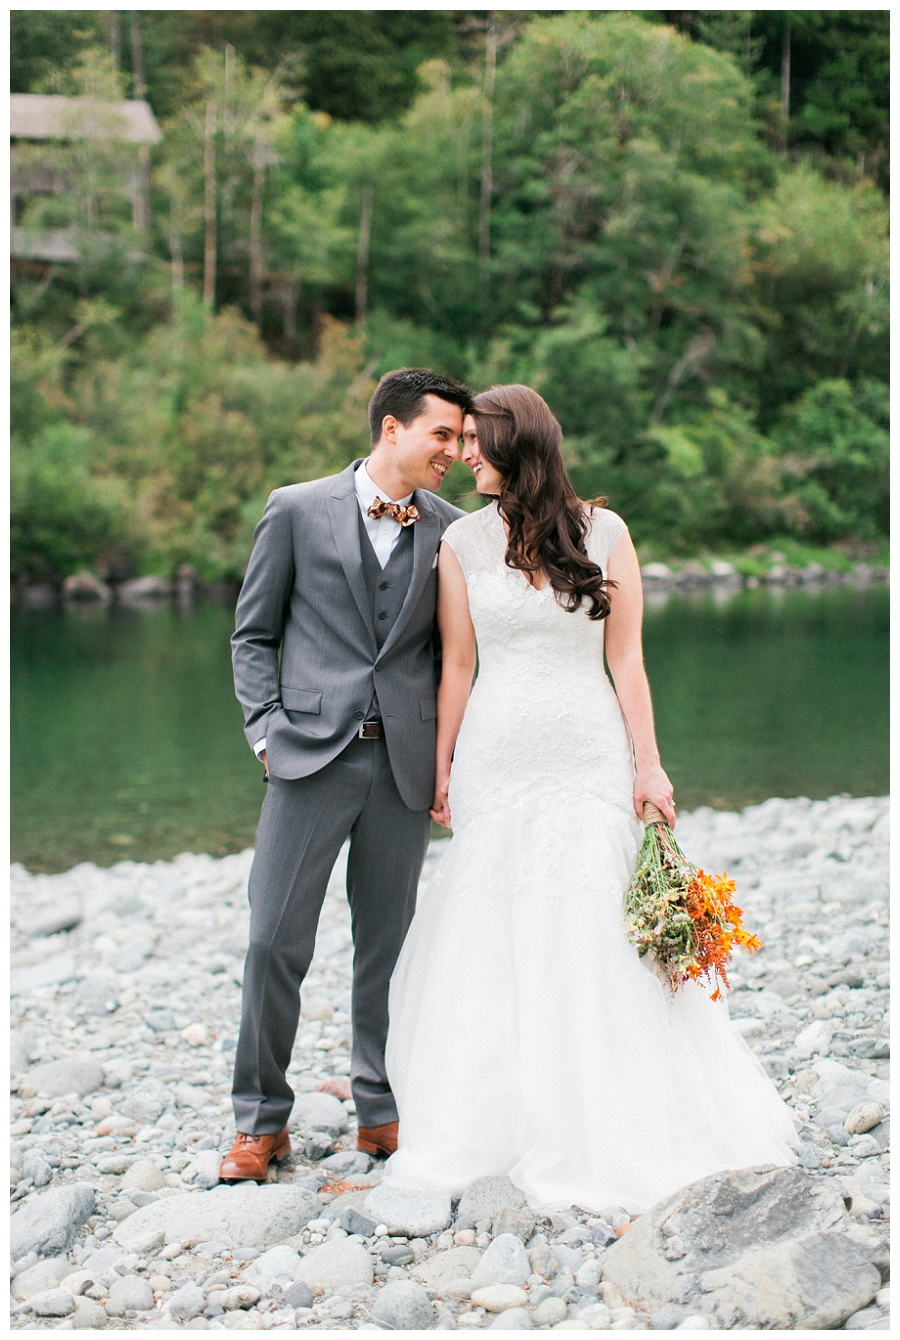 Destination Wedding Photographer Olivia Leigh Photography_0477